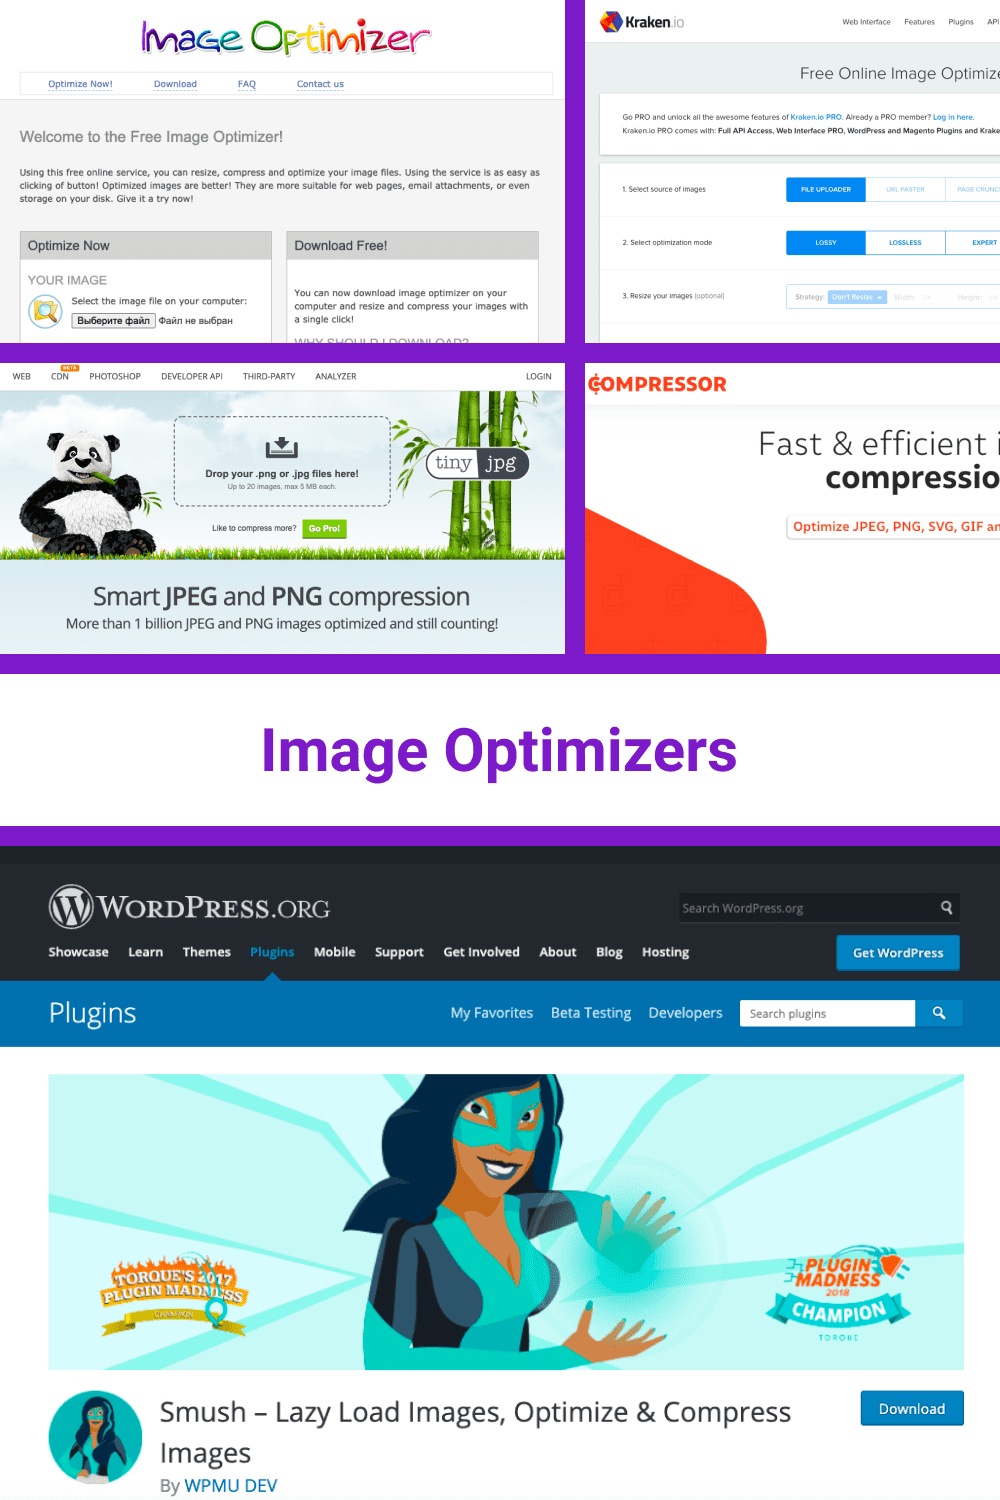 Tools for image optimization.